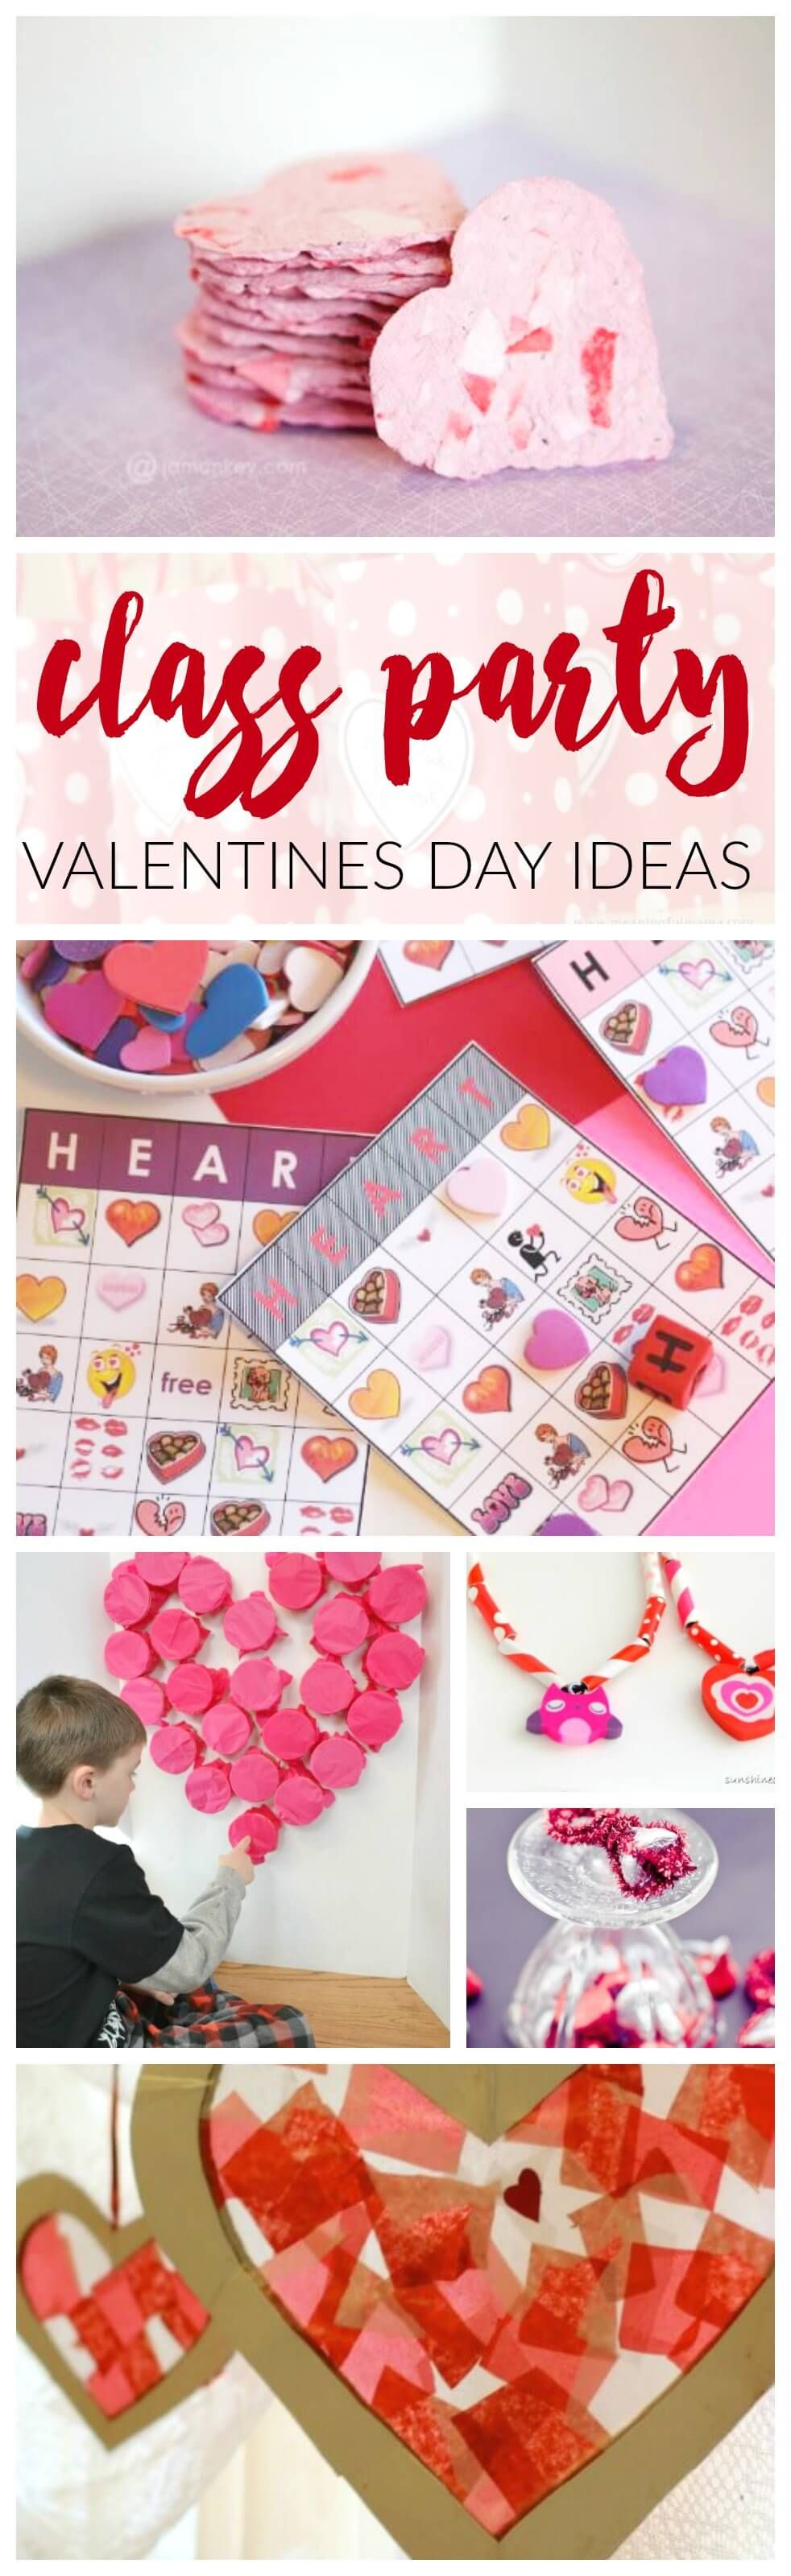 Class Party Valentines Day Ideas If You Are The Class Mom